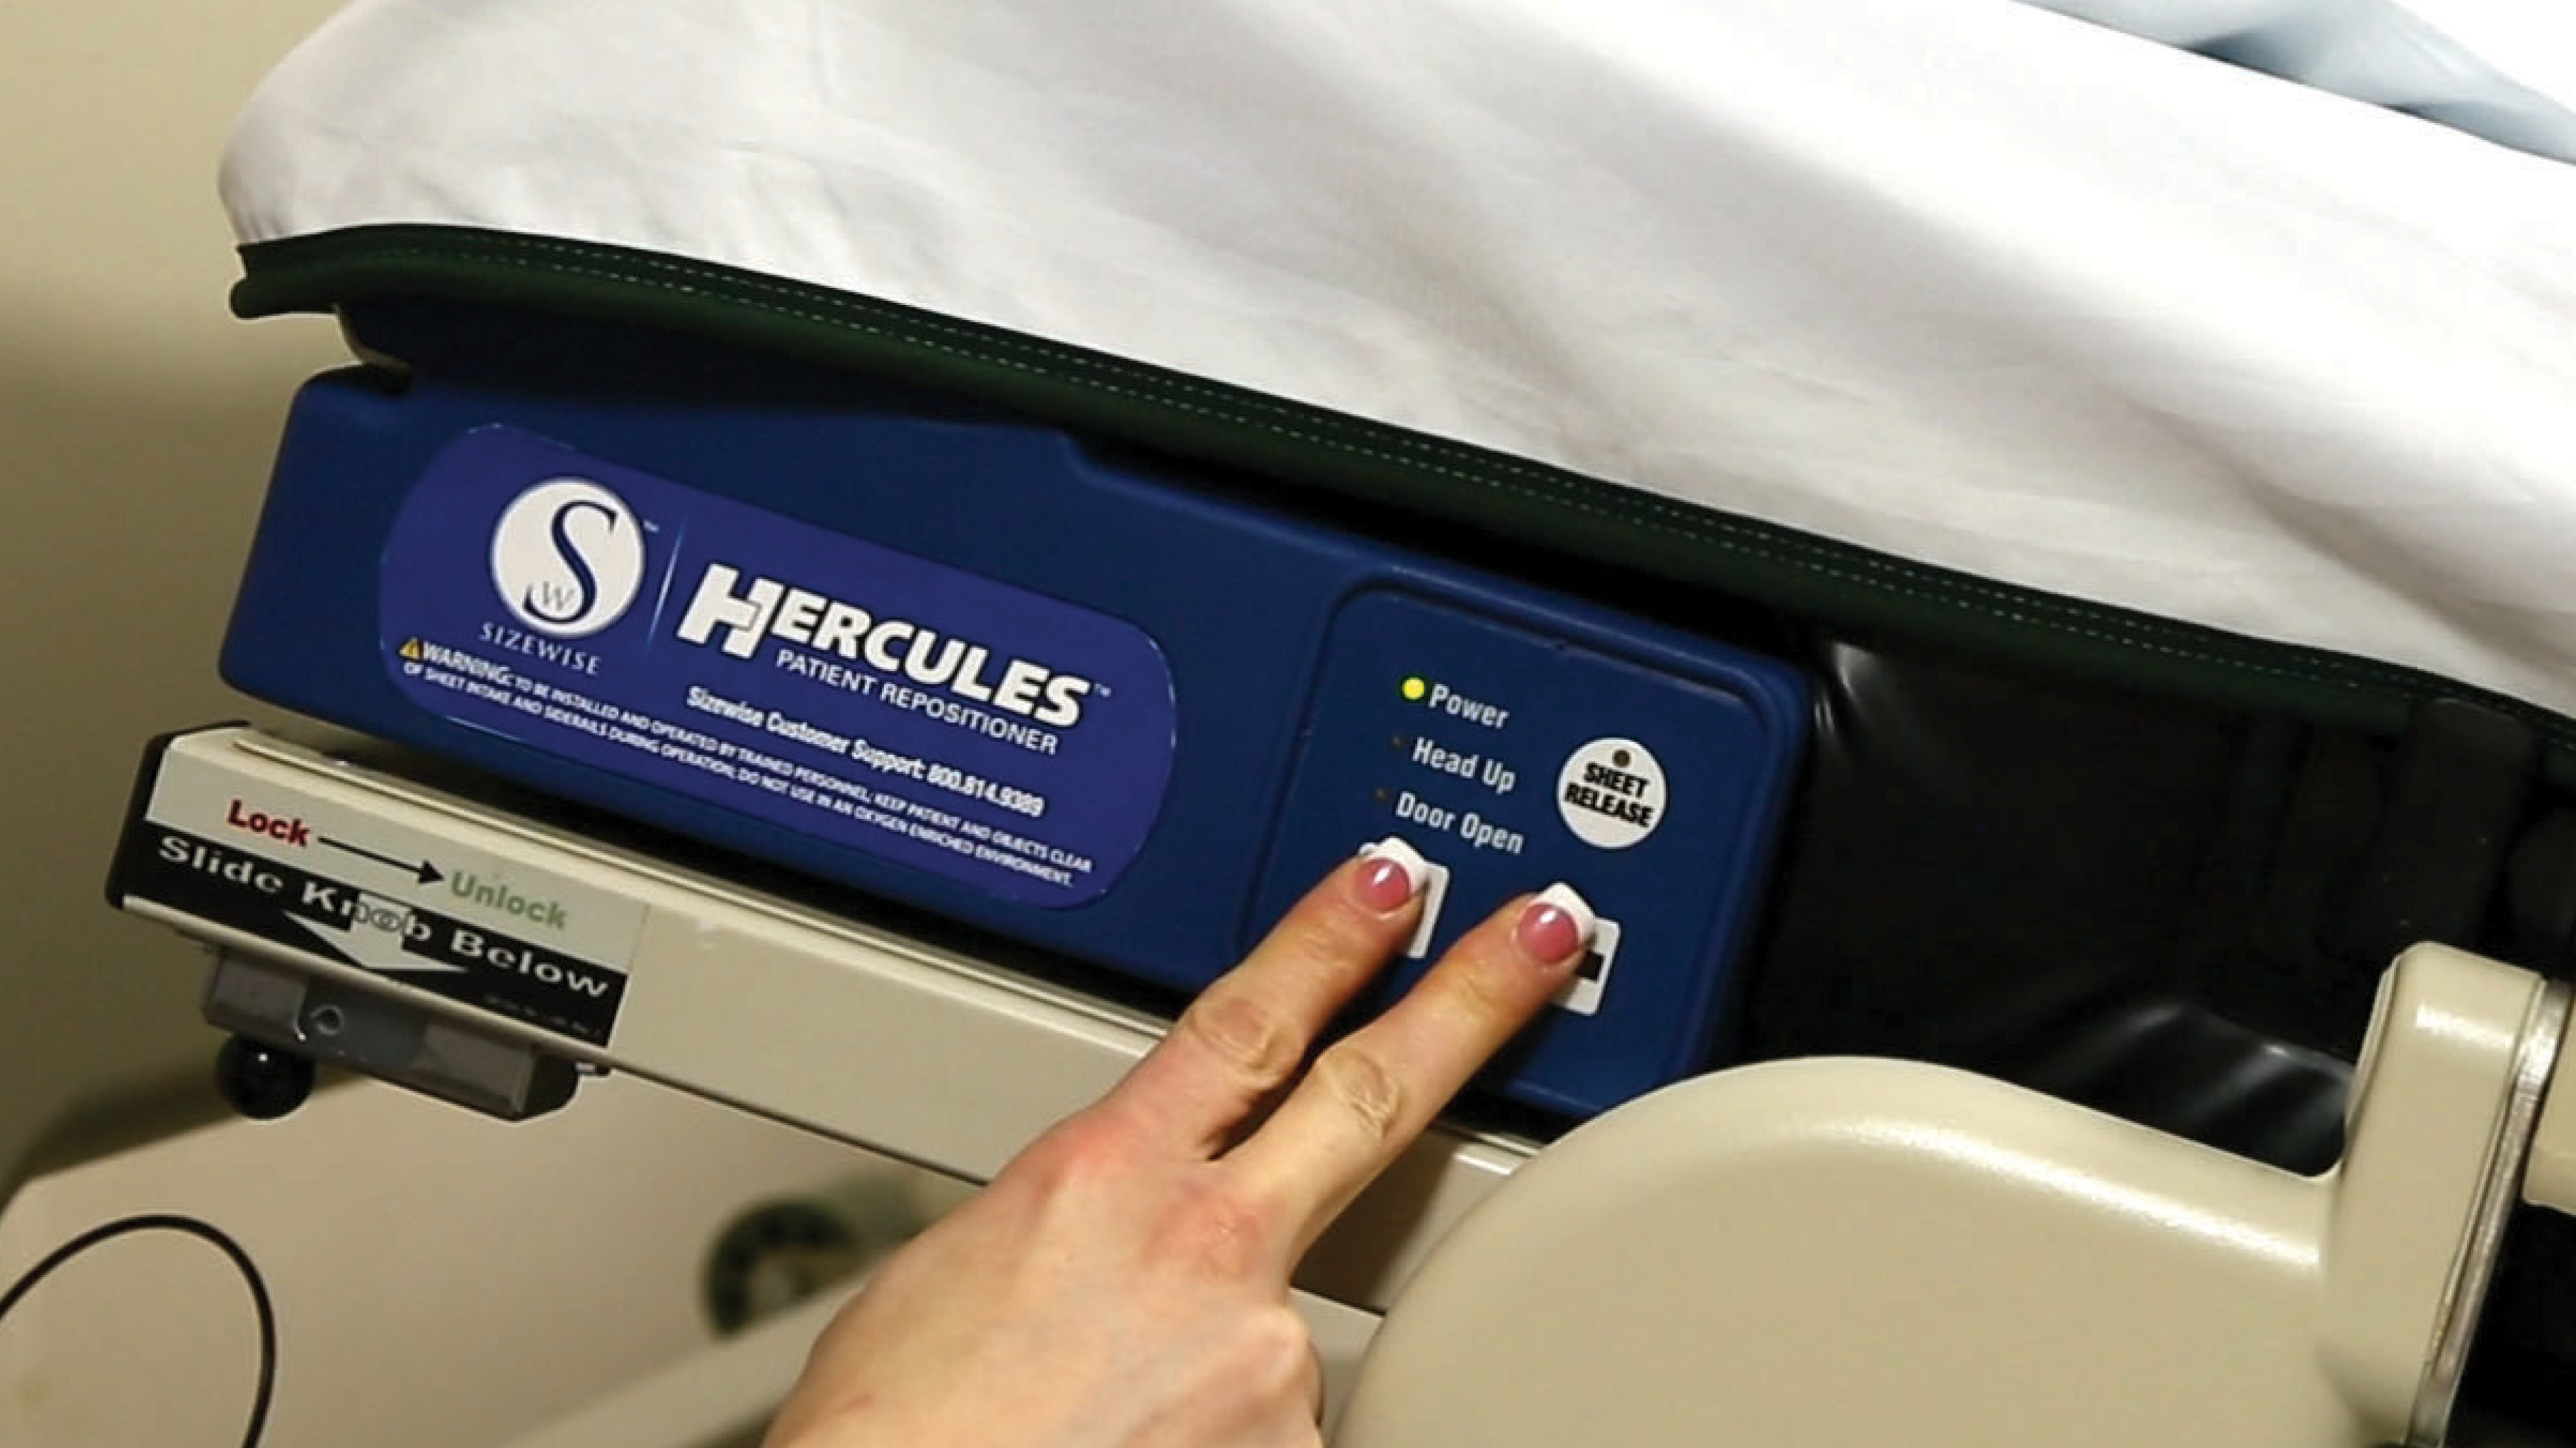 Caregiver Using Two Fingers For Hercules Control Panel